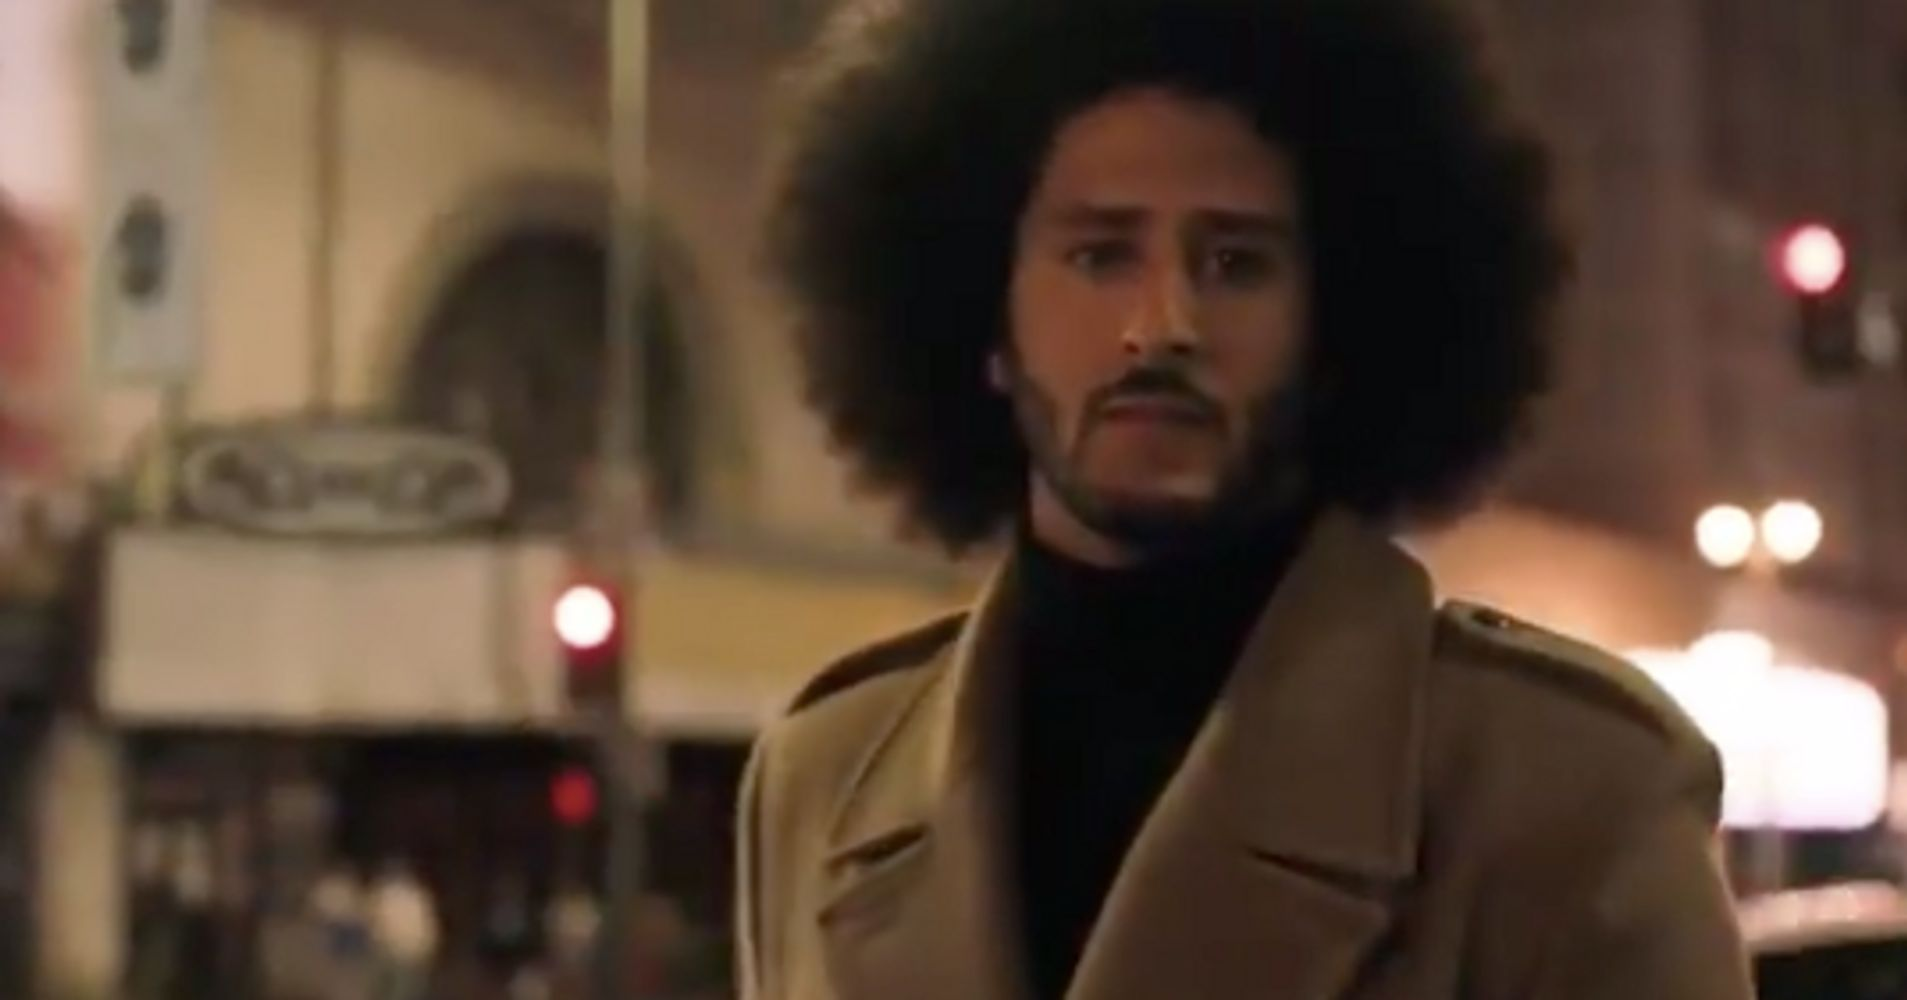 Colin Kaepernick Unveils An Emotional New Nike Ad Amid Controversy